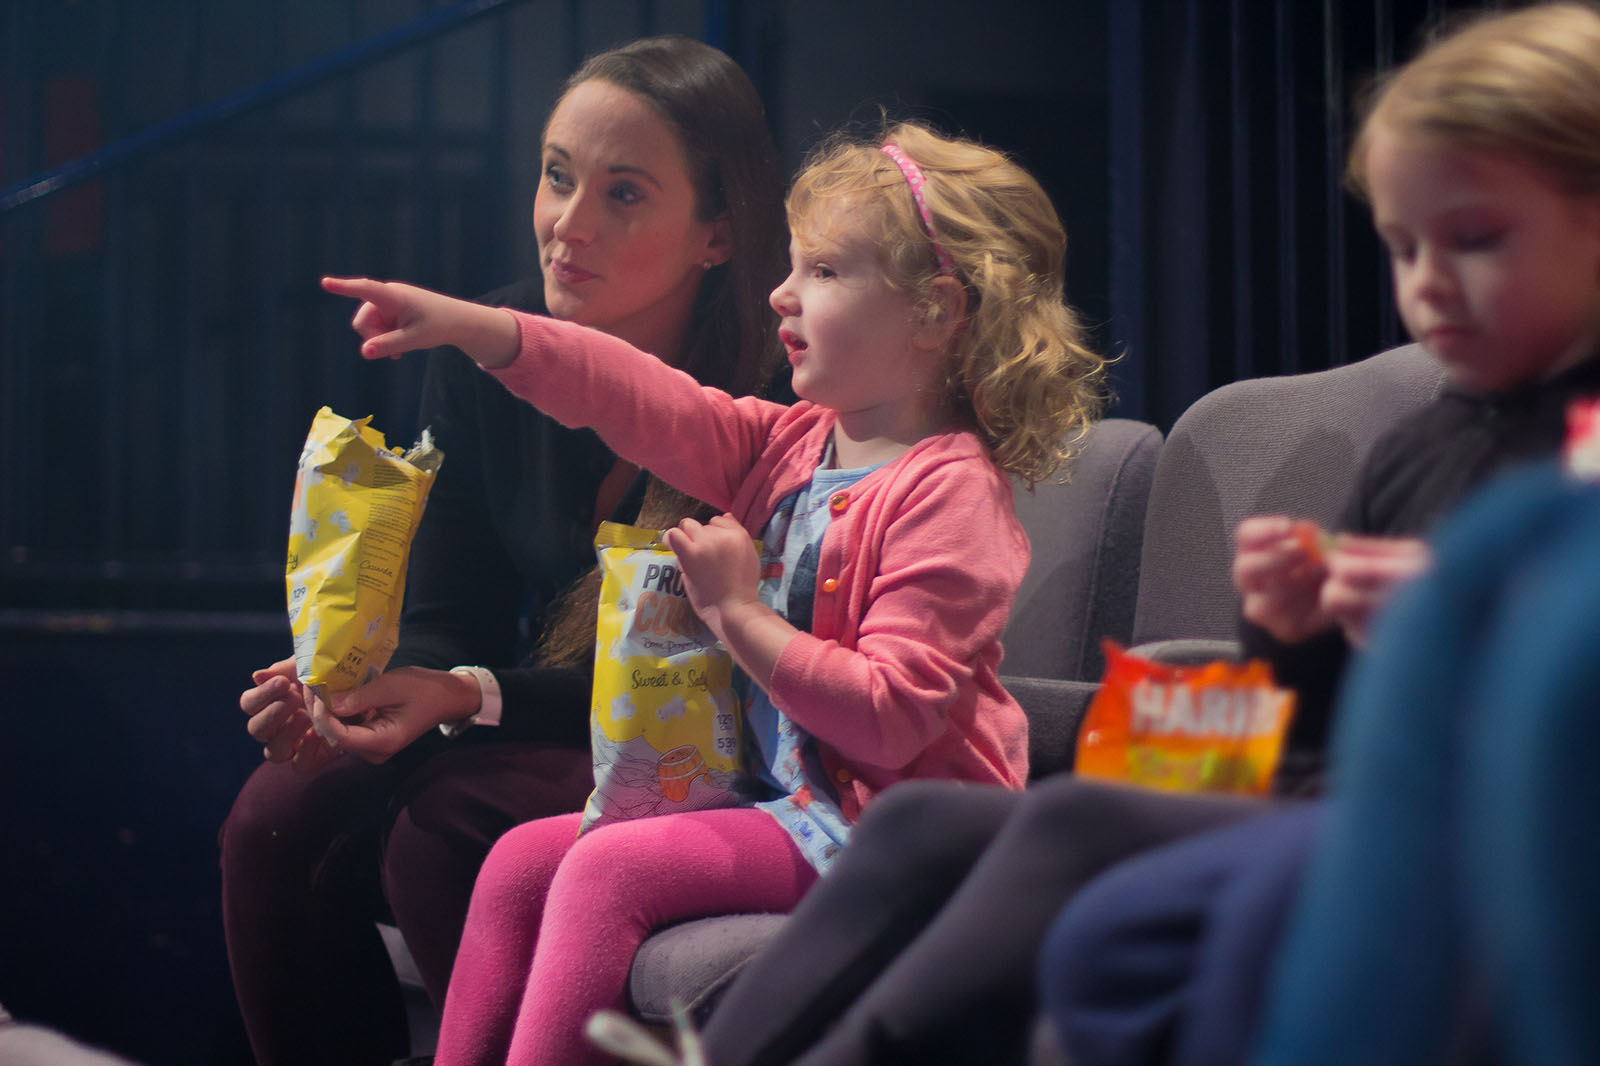 young girl pointing at a cinema screen holding popcorn